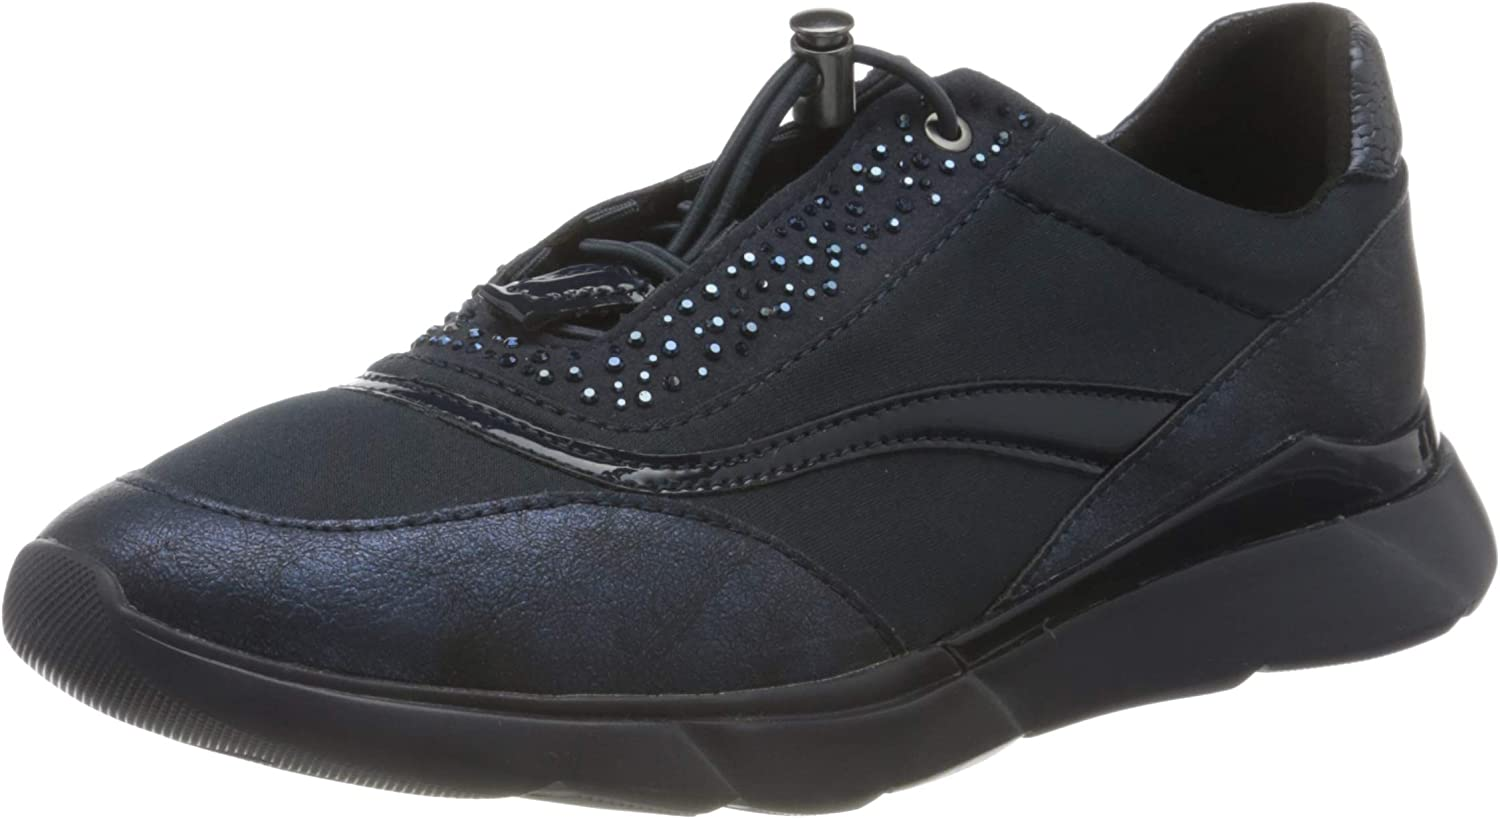 Geox Women's Low price Low-top Indianapolis Mall Sneaker Trainers